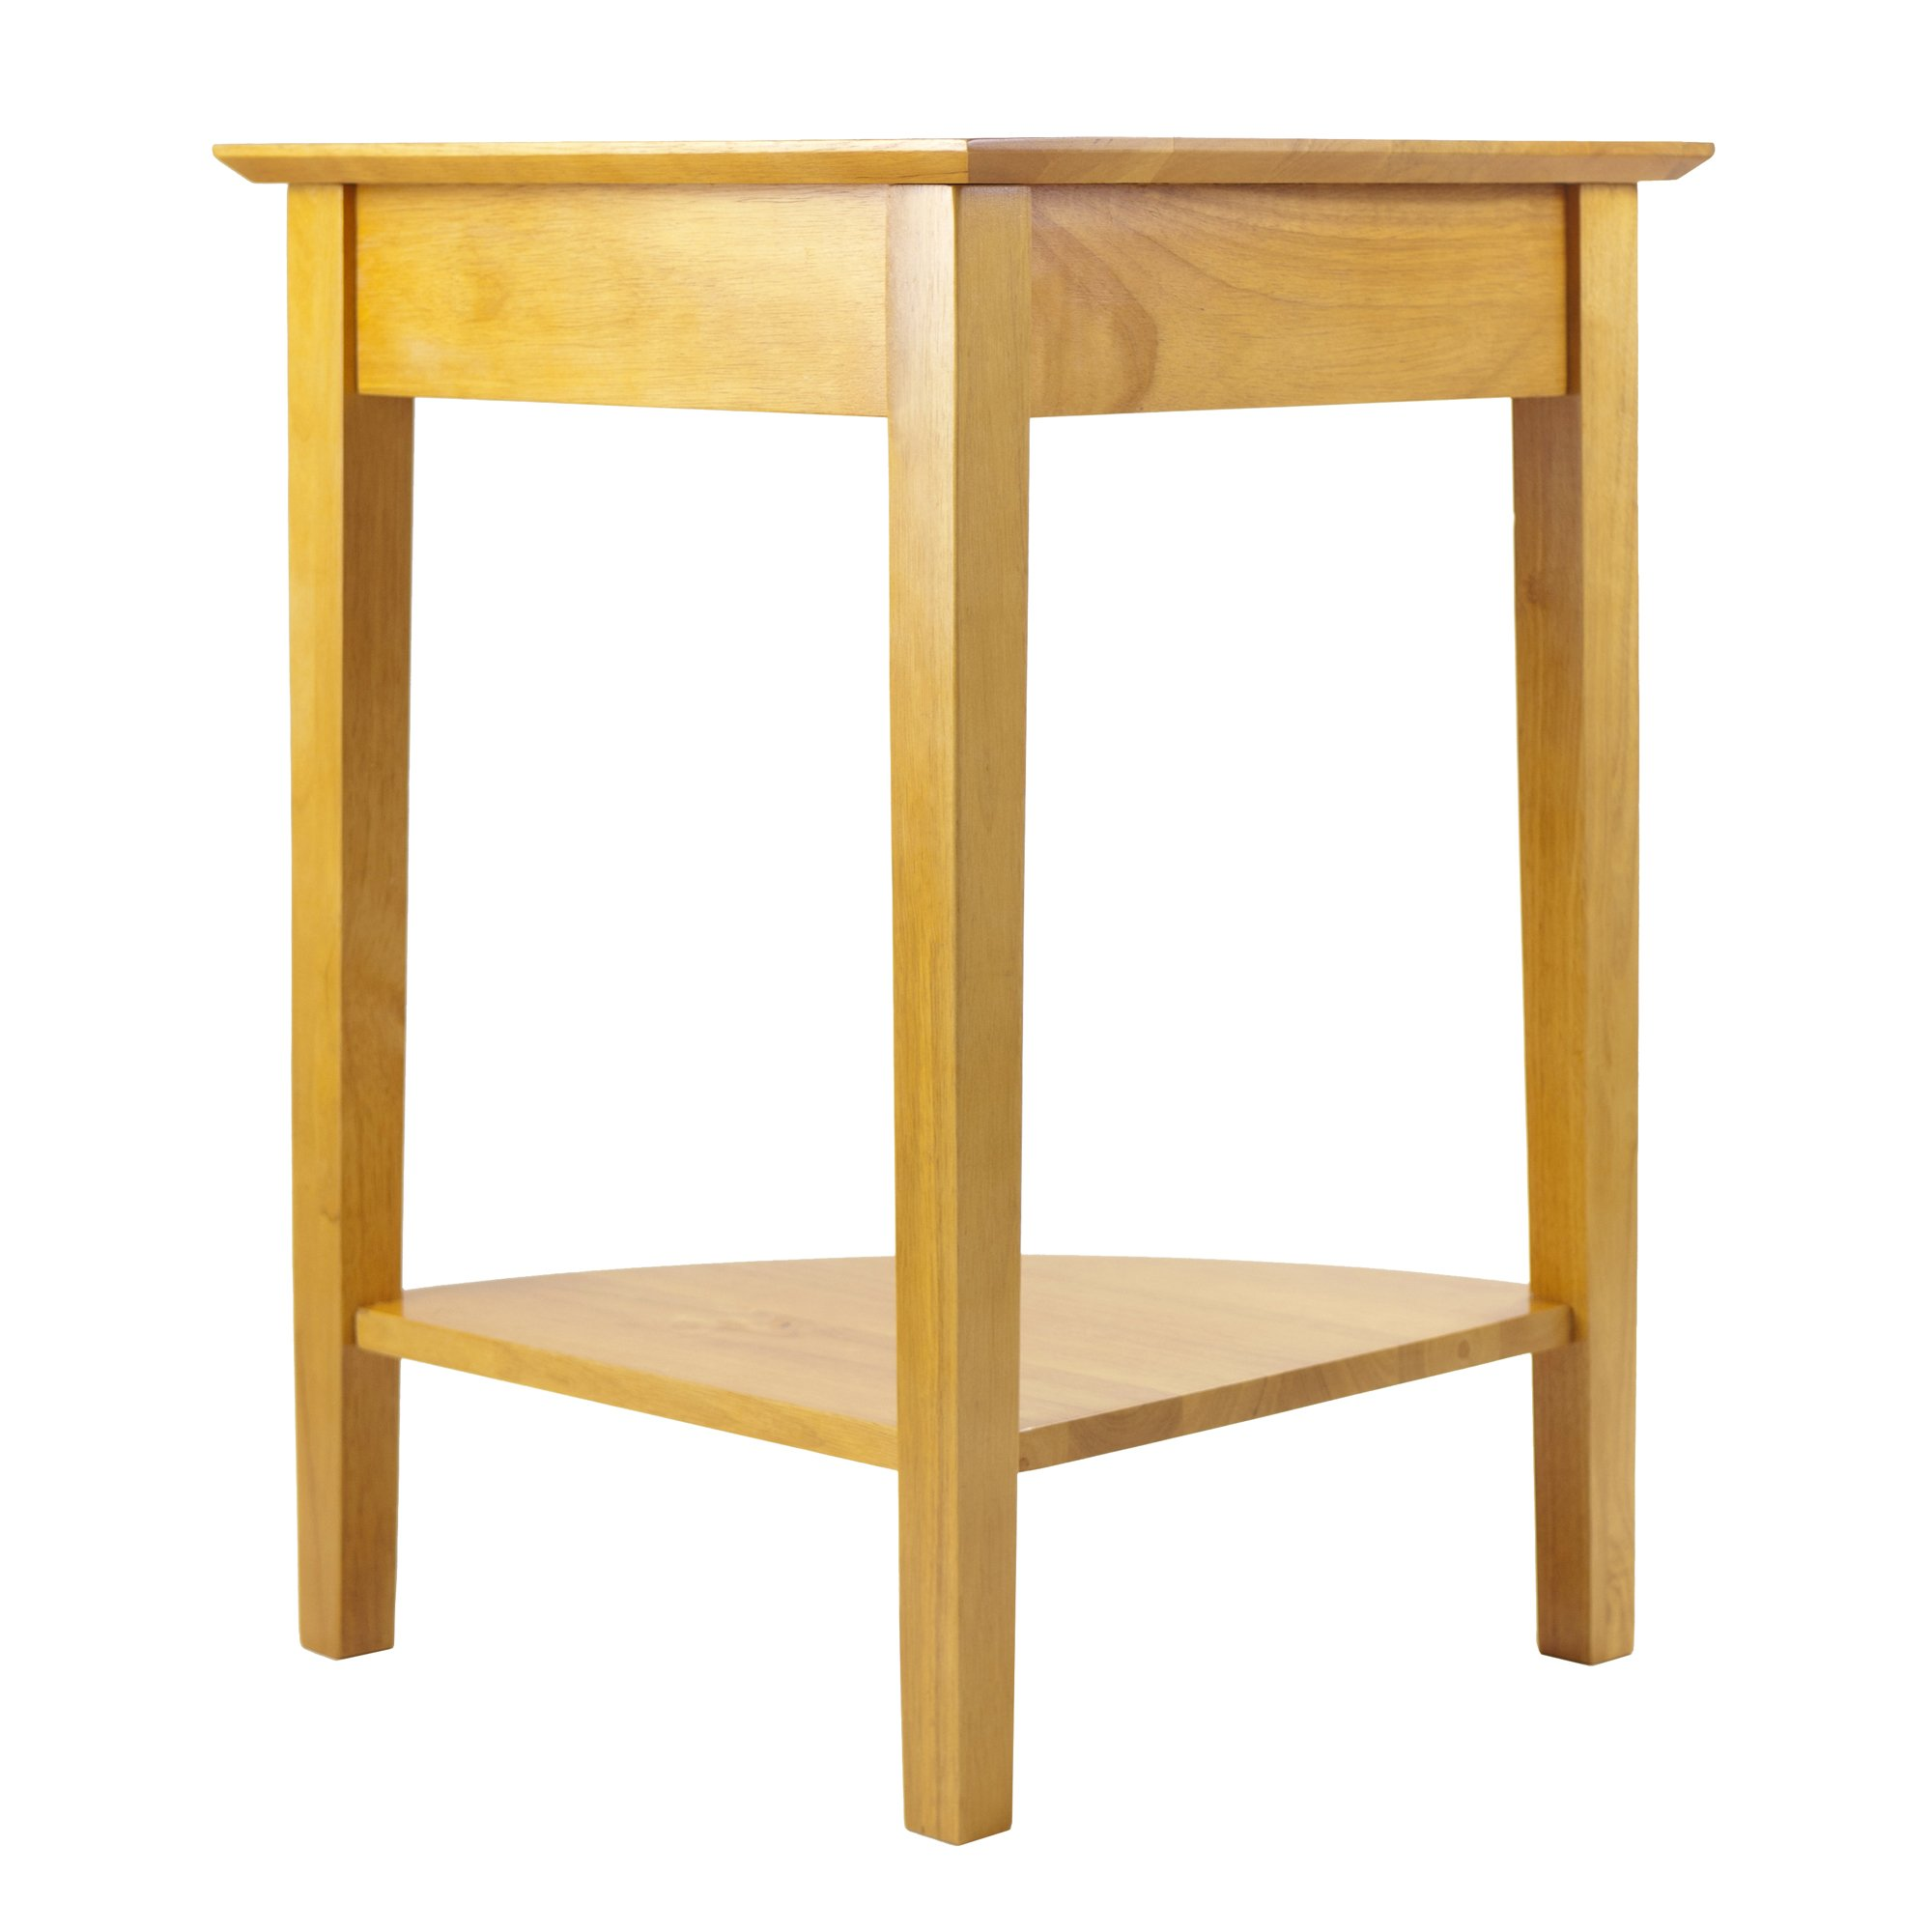 Winsome Wood Corner Desk with Shelf, Honey by Winsome Wood (Image #4)